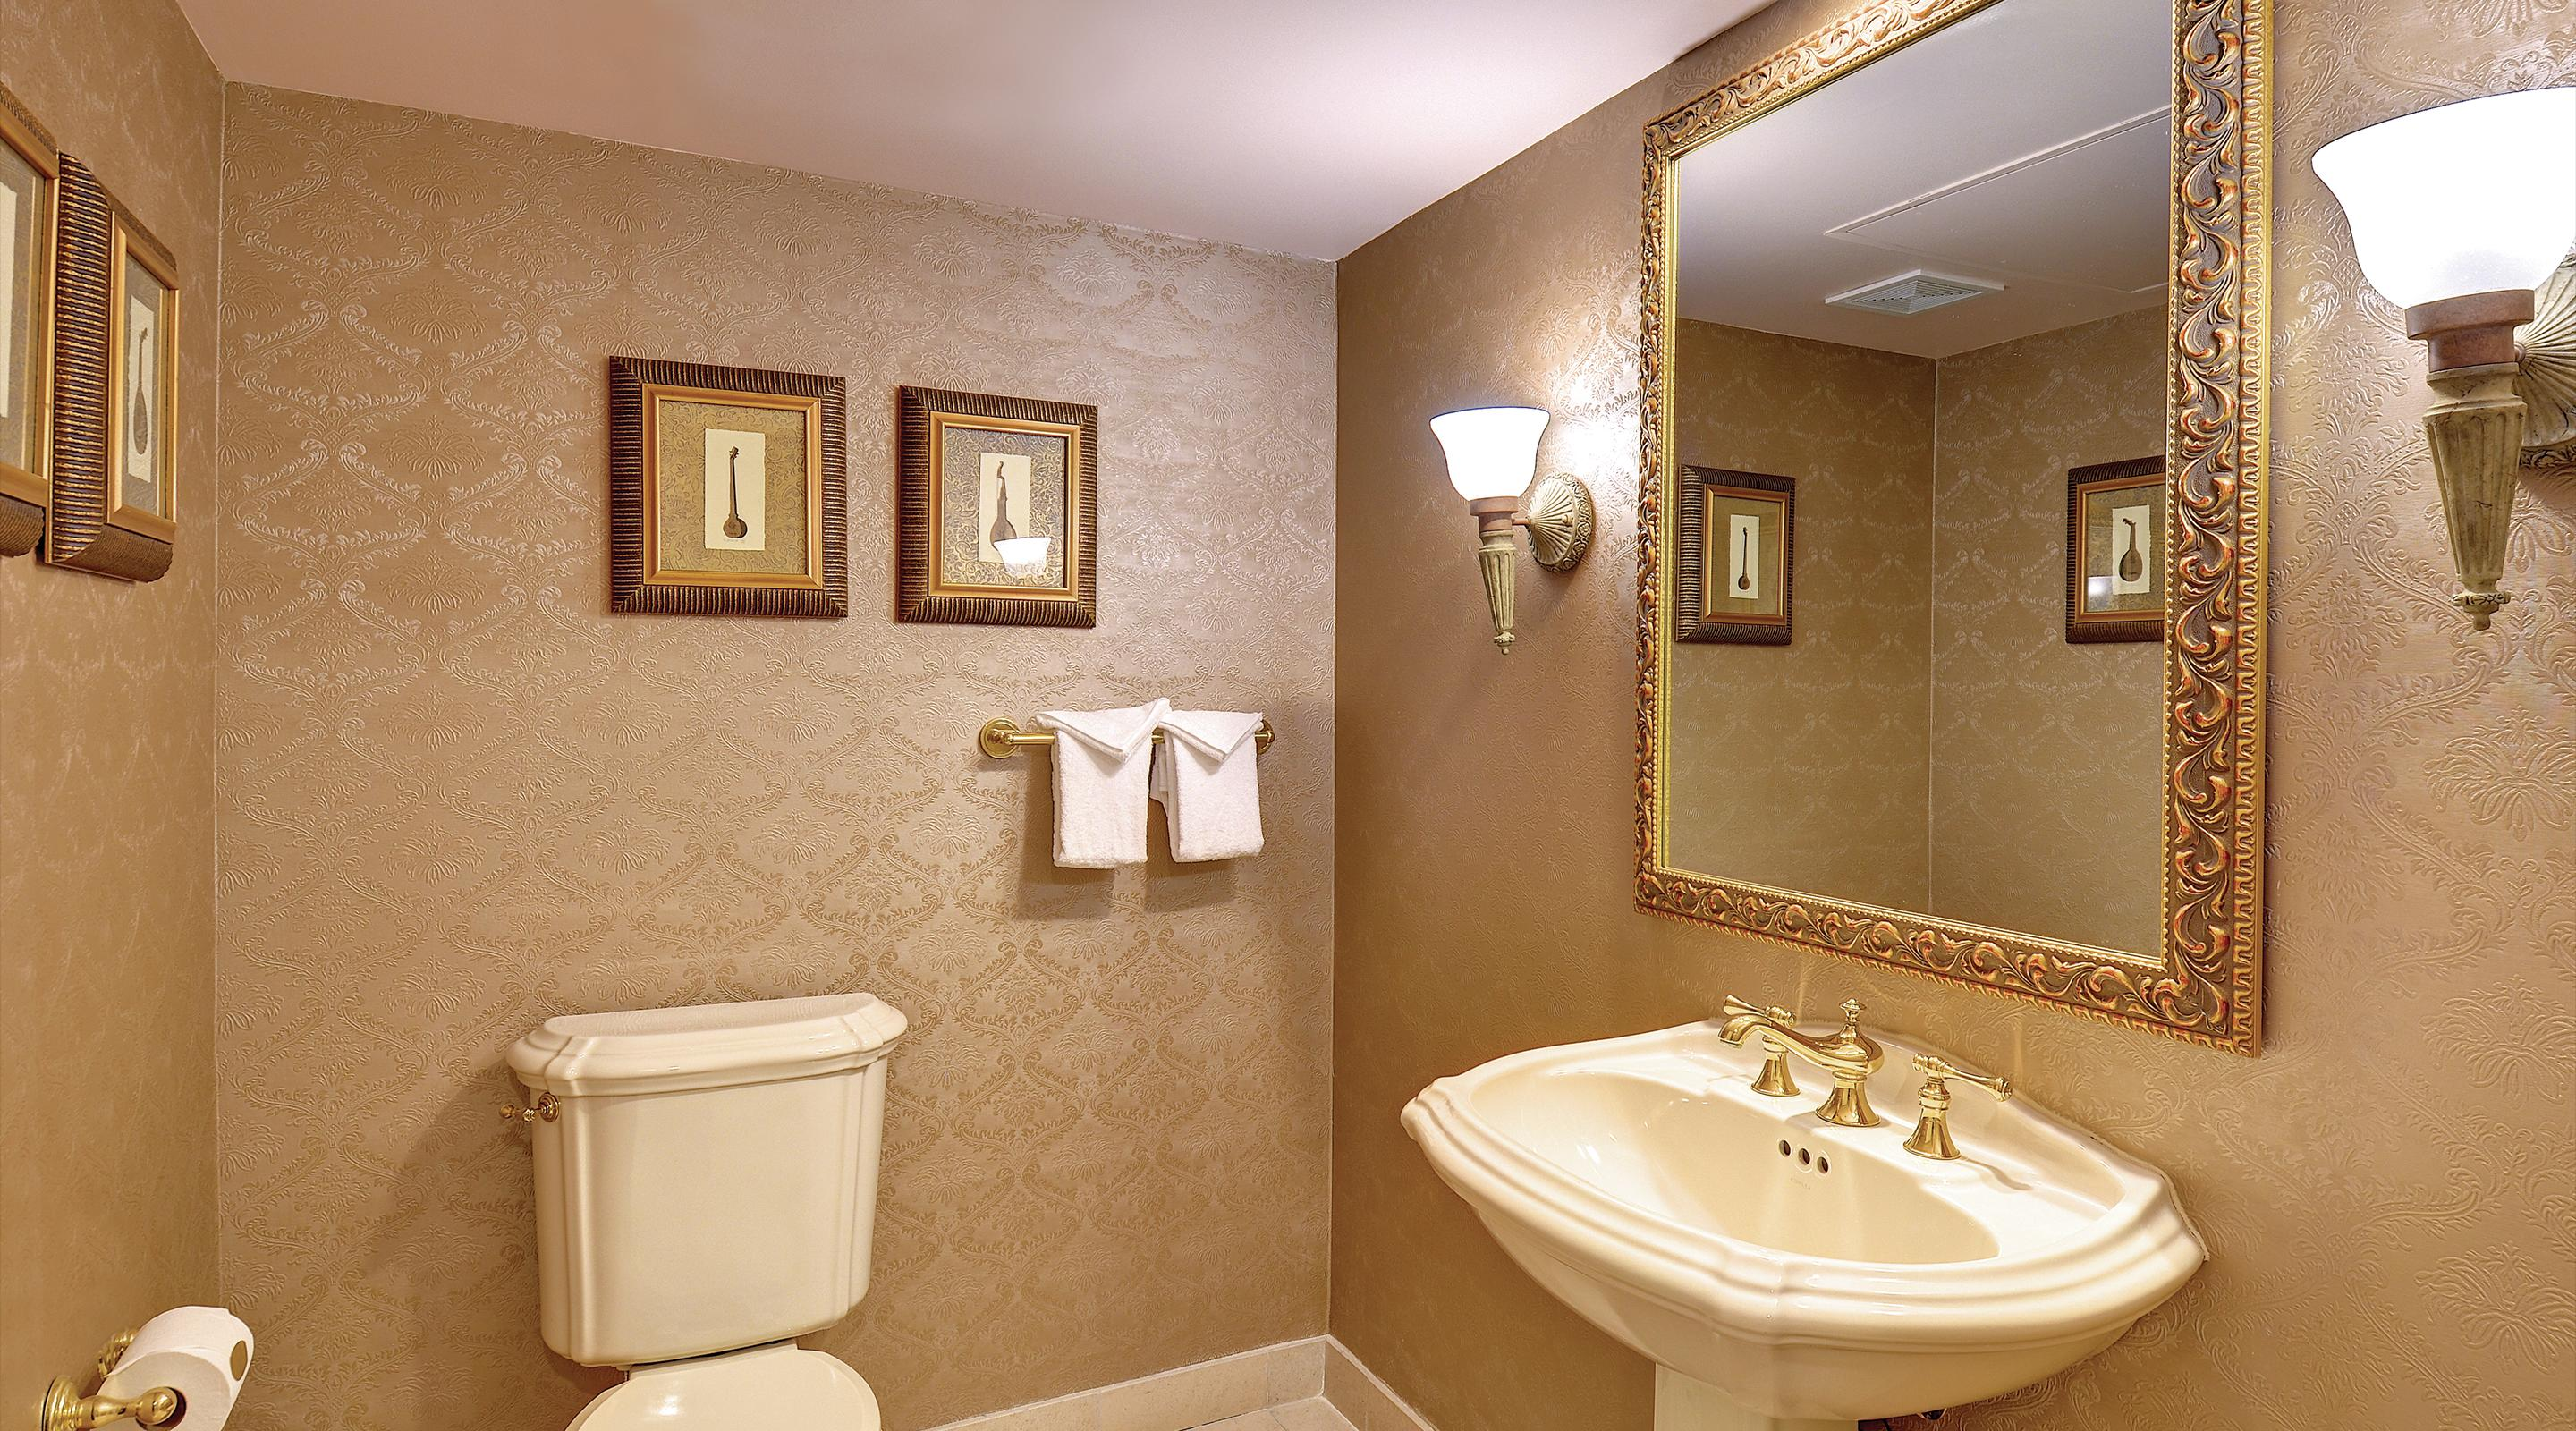 This is an image of the Royal Luxury Suite Secondary Bathroom.